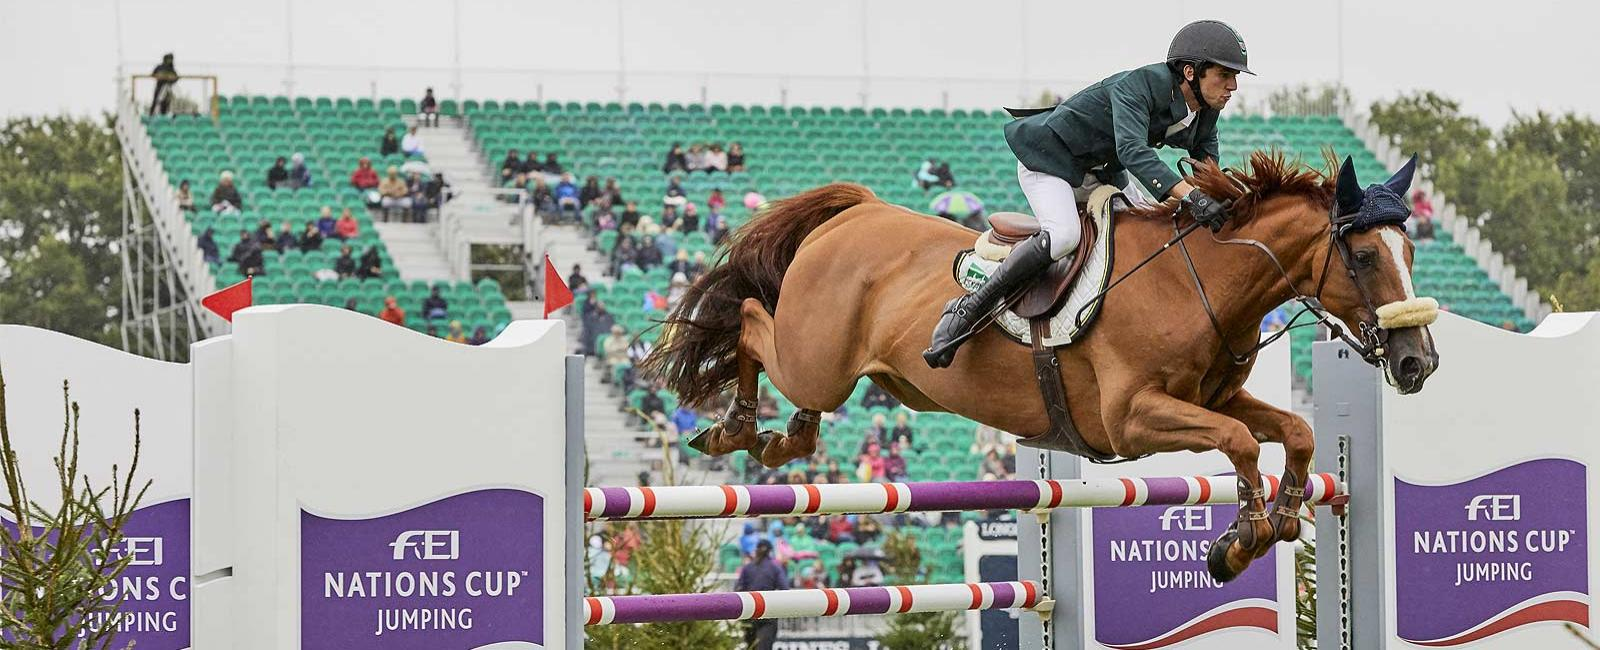 Aubepines Fei 1: Team Brazil Swept To Victory At The Longines Royal